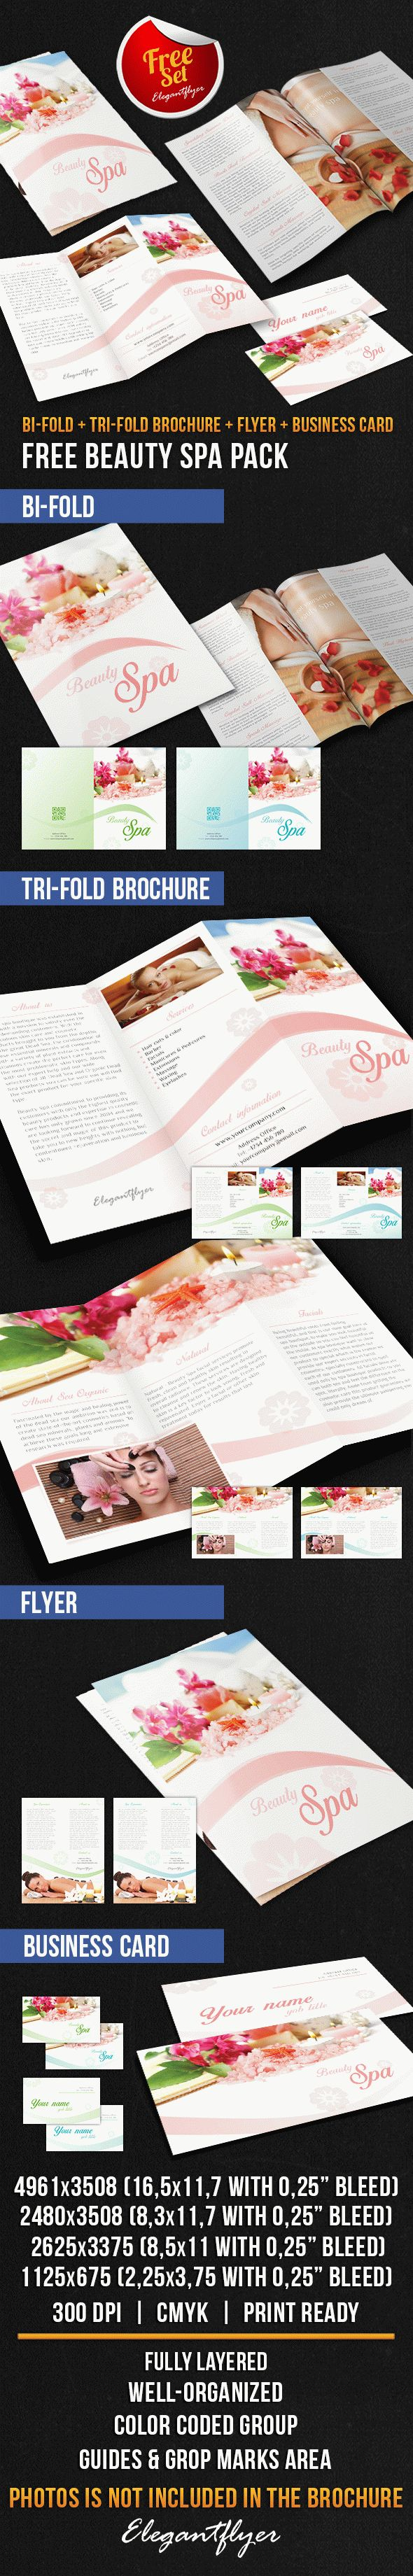 Beauty spa brochure pack free psd template by elegantflyer for Spa brochure templates free